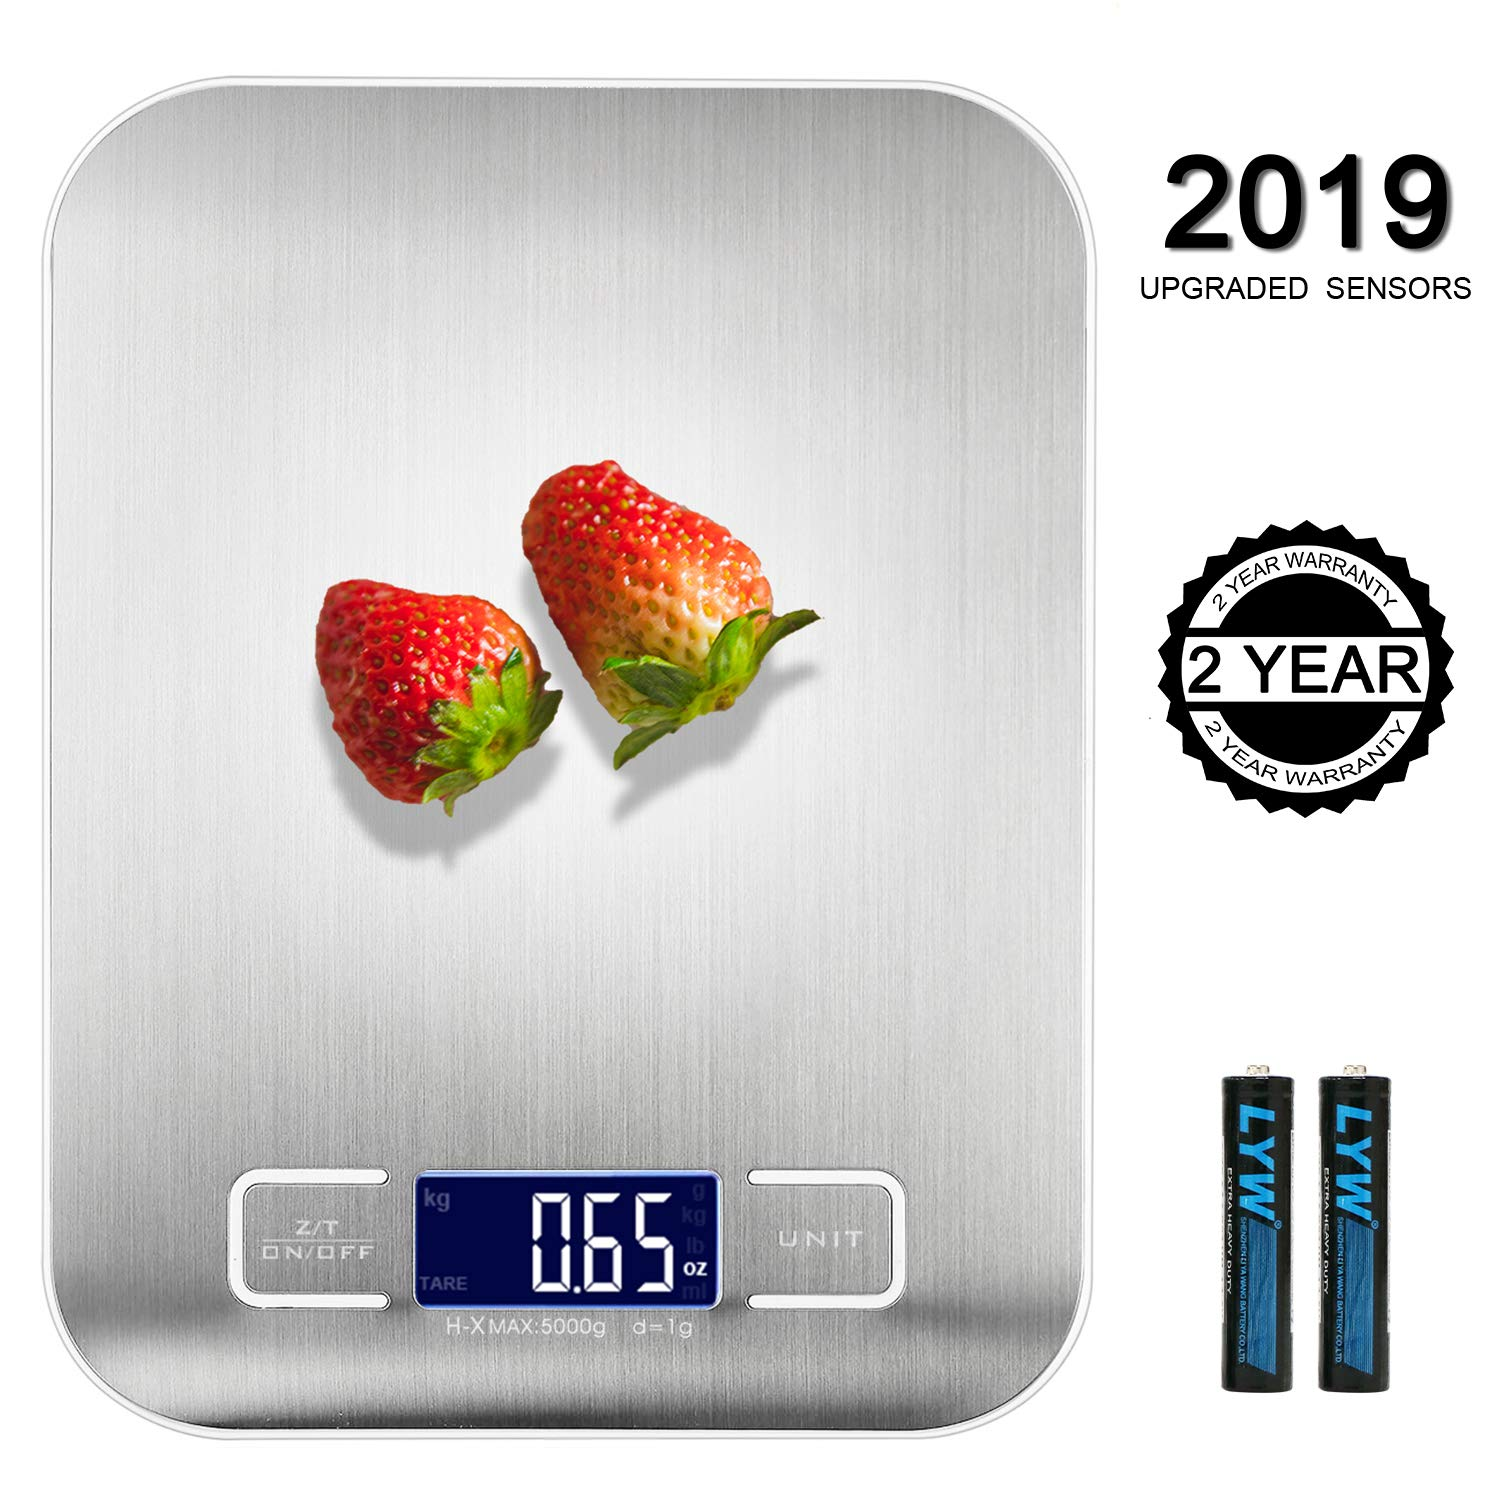 Food Scale - Kitchen Scale - Digital Food Scale - Weighs In Grams Kilograms Pounds Ounces G Kg Lb Oz - 11 Lb / 5 Kg Capacity - S